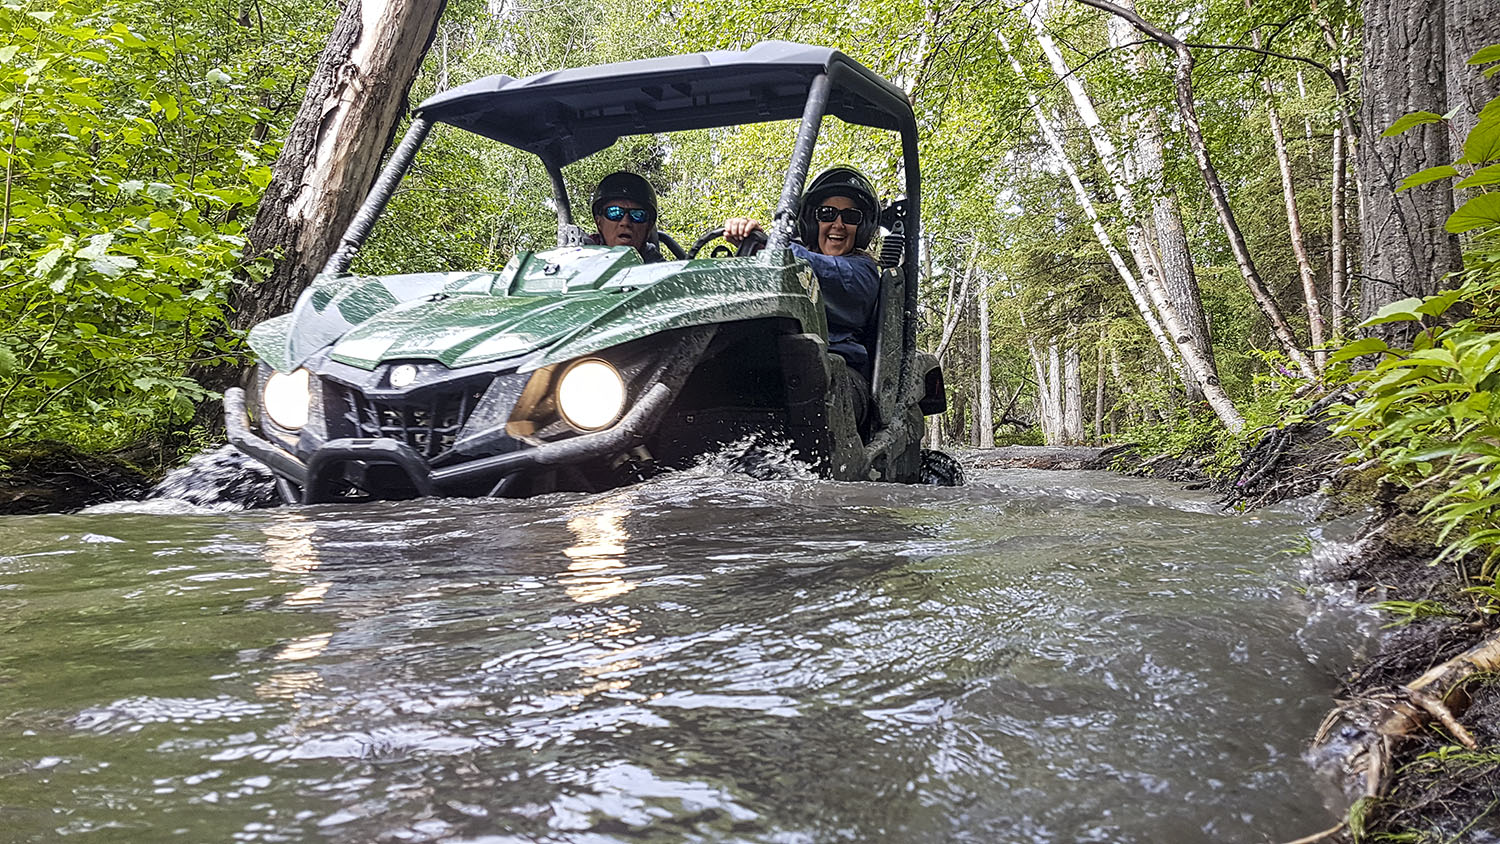 Couple drives UTV through forest pond